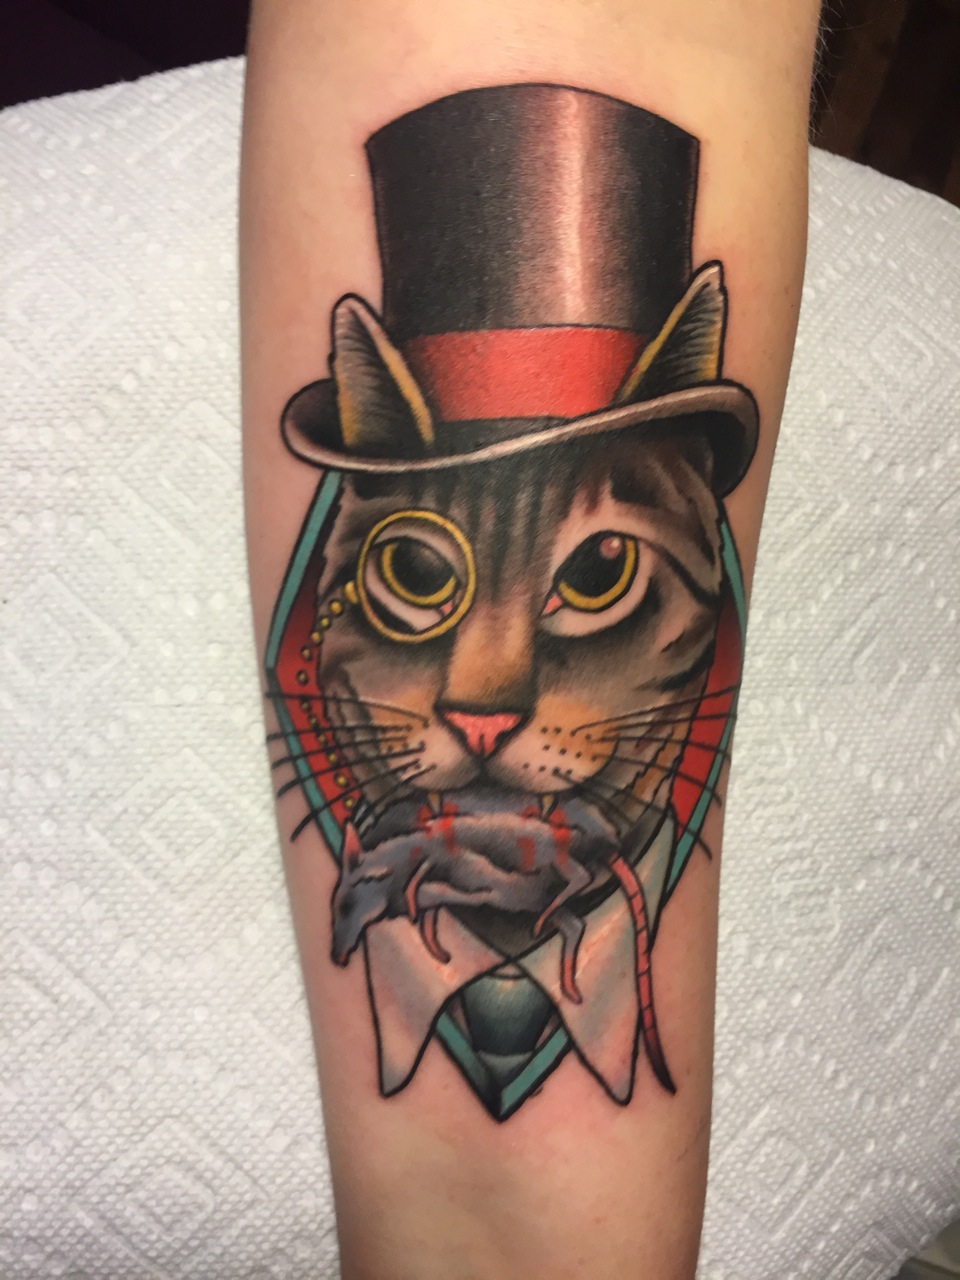 Create your own tattoo for Design your own tattoos